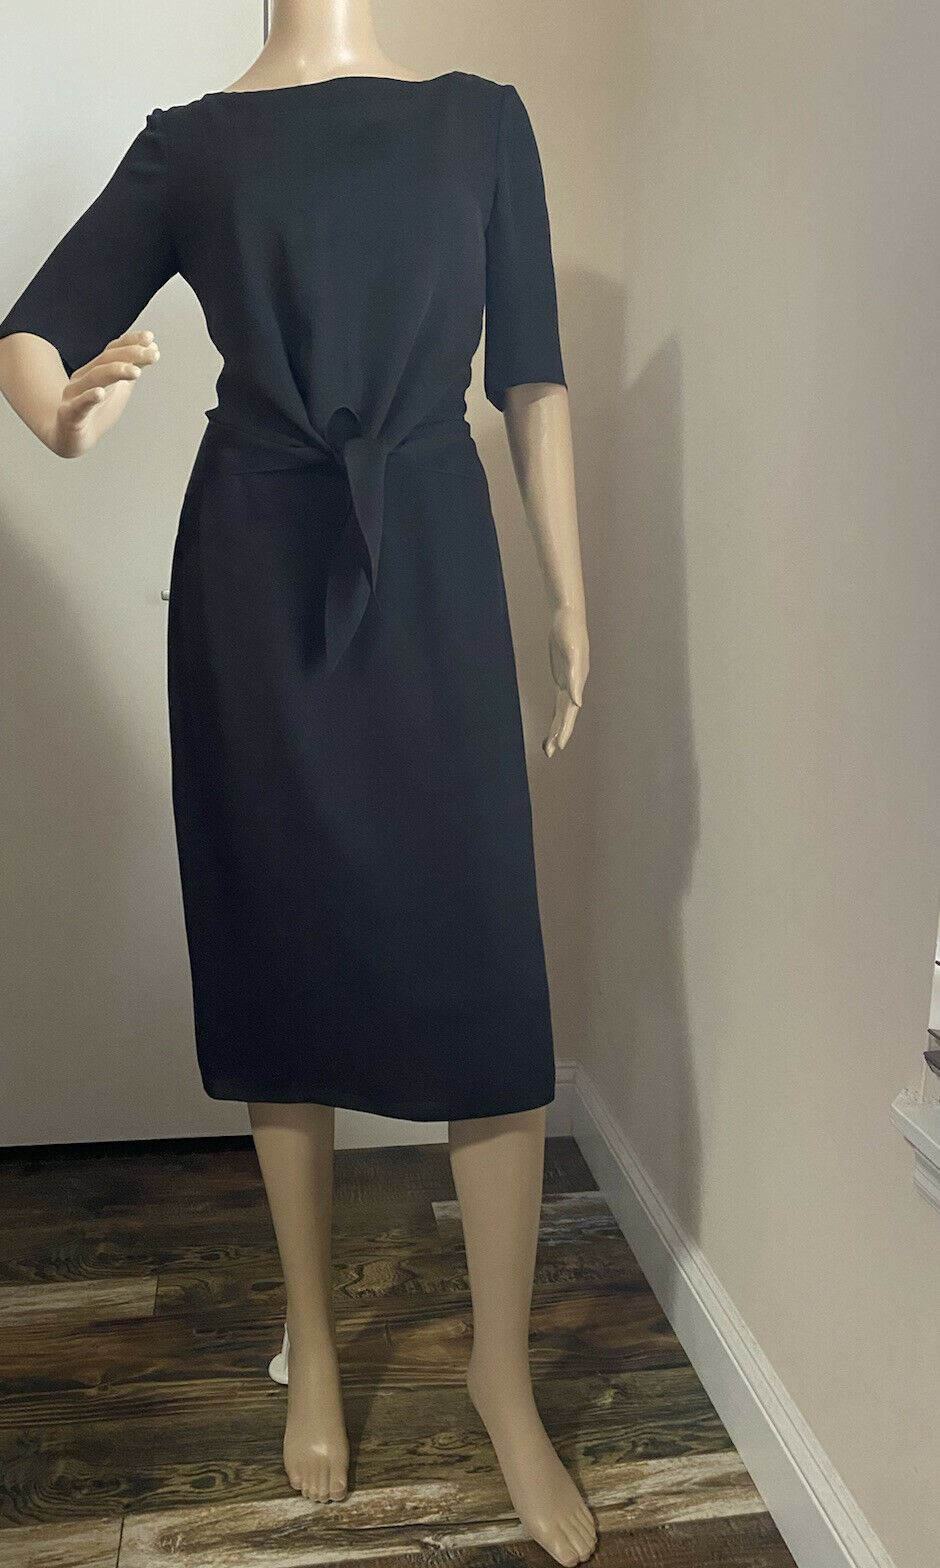 New $1690 Ralph Lauren Purple Label Dress Black Size 4 US  Made In USA